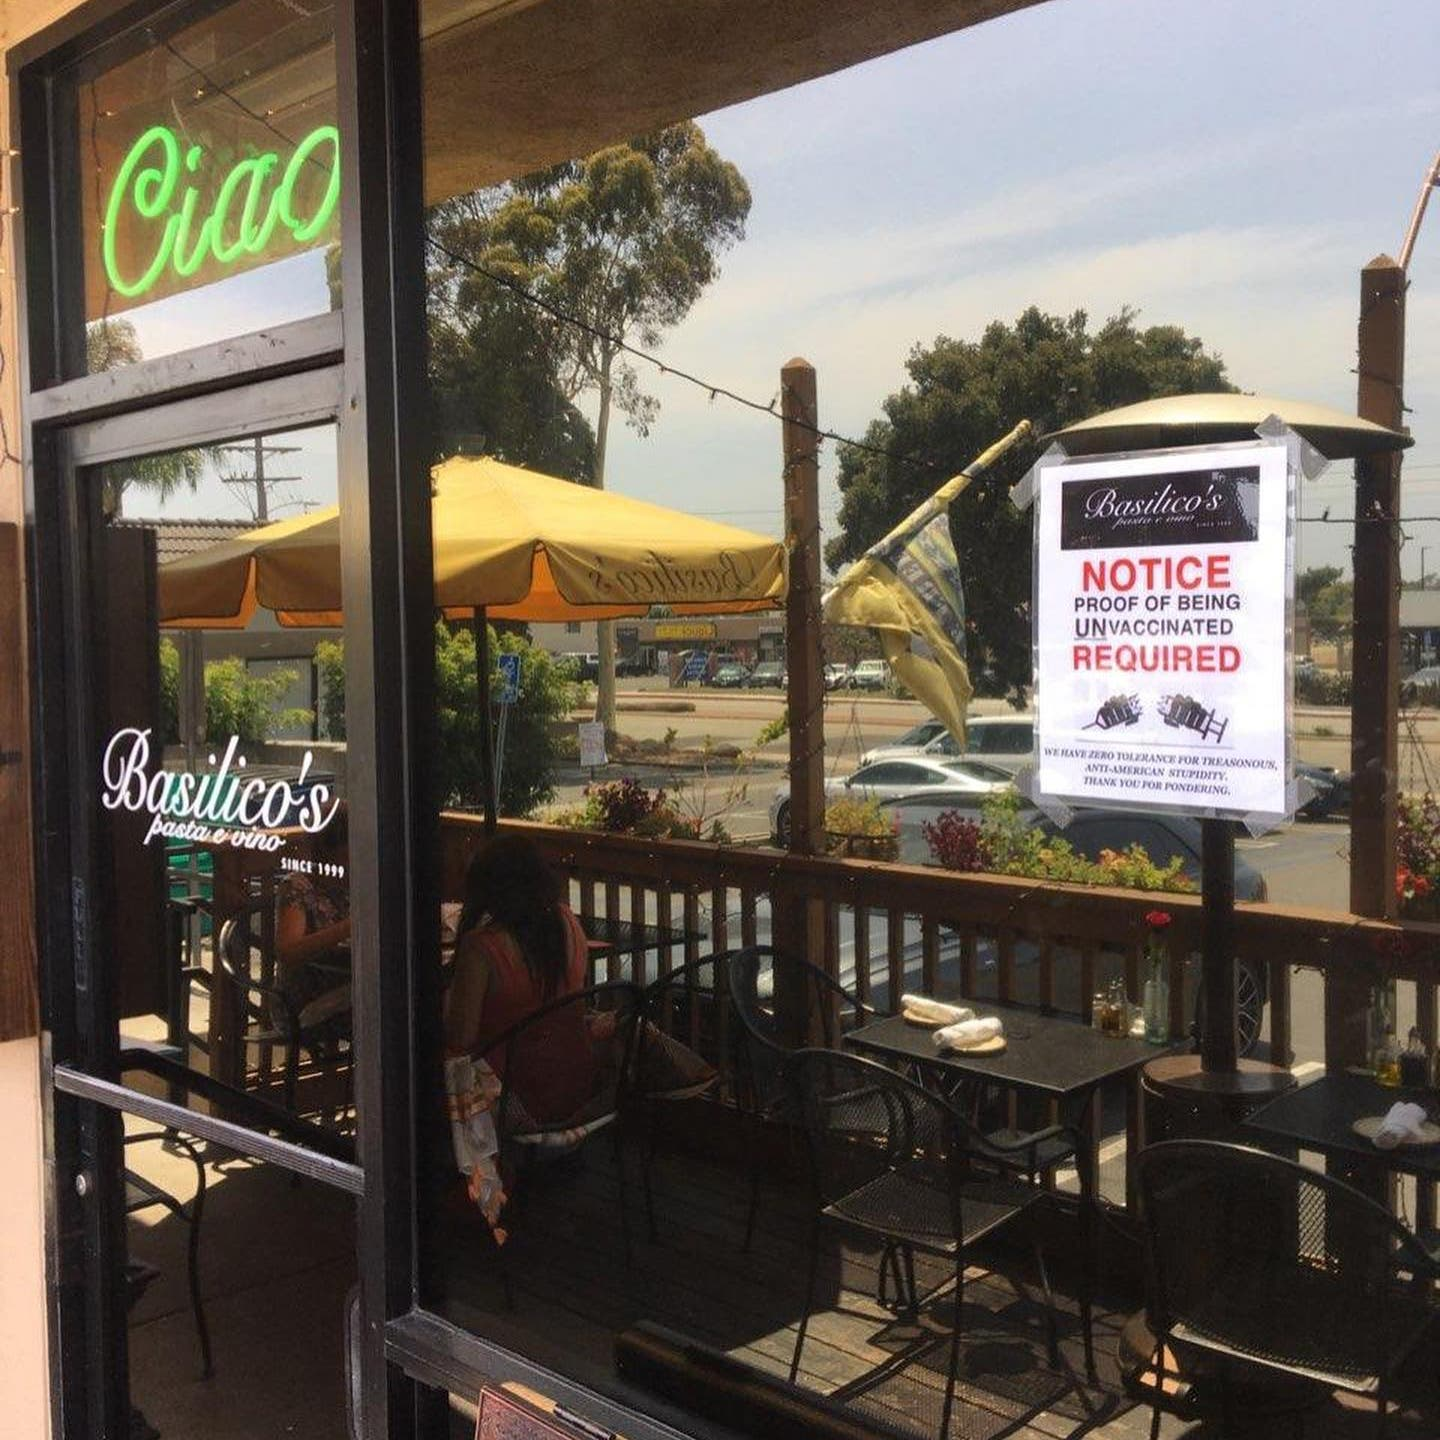 California restaurant owner requires diners show 'proof of being unvaccinated'